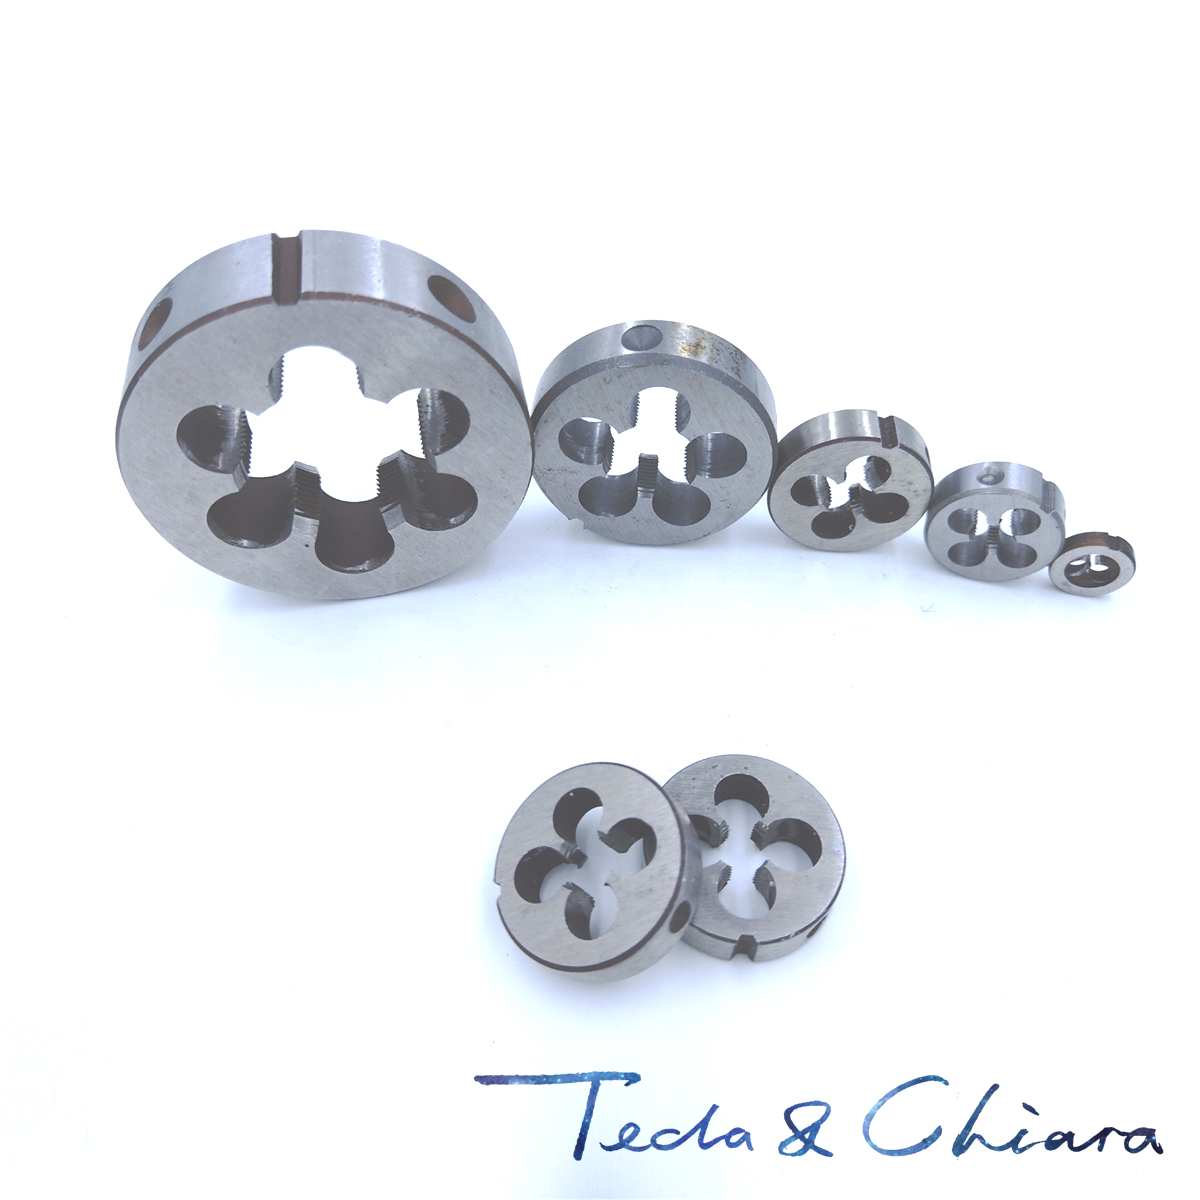 9/16-12 9/16-14 9/16-16 9/16-18 9/16-20 UNC UNS UN UNF Right Hand Die Threading Tools Mold Machining 9/16 9/16